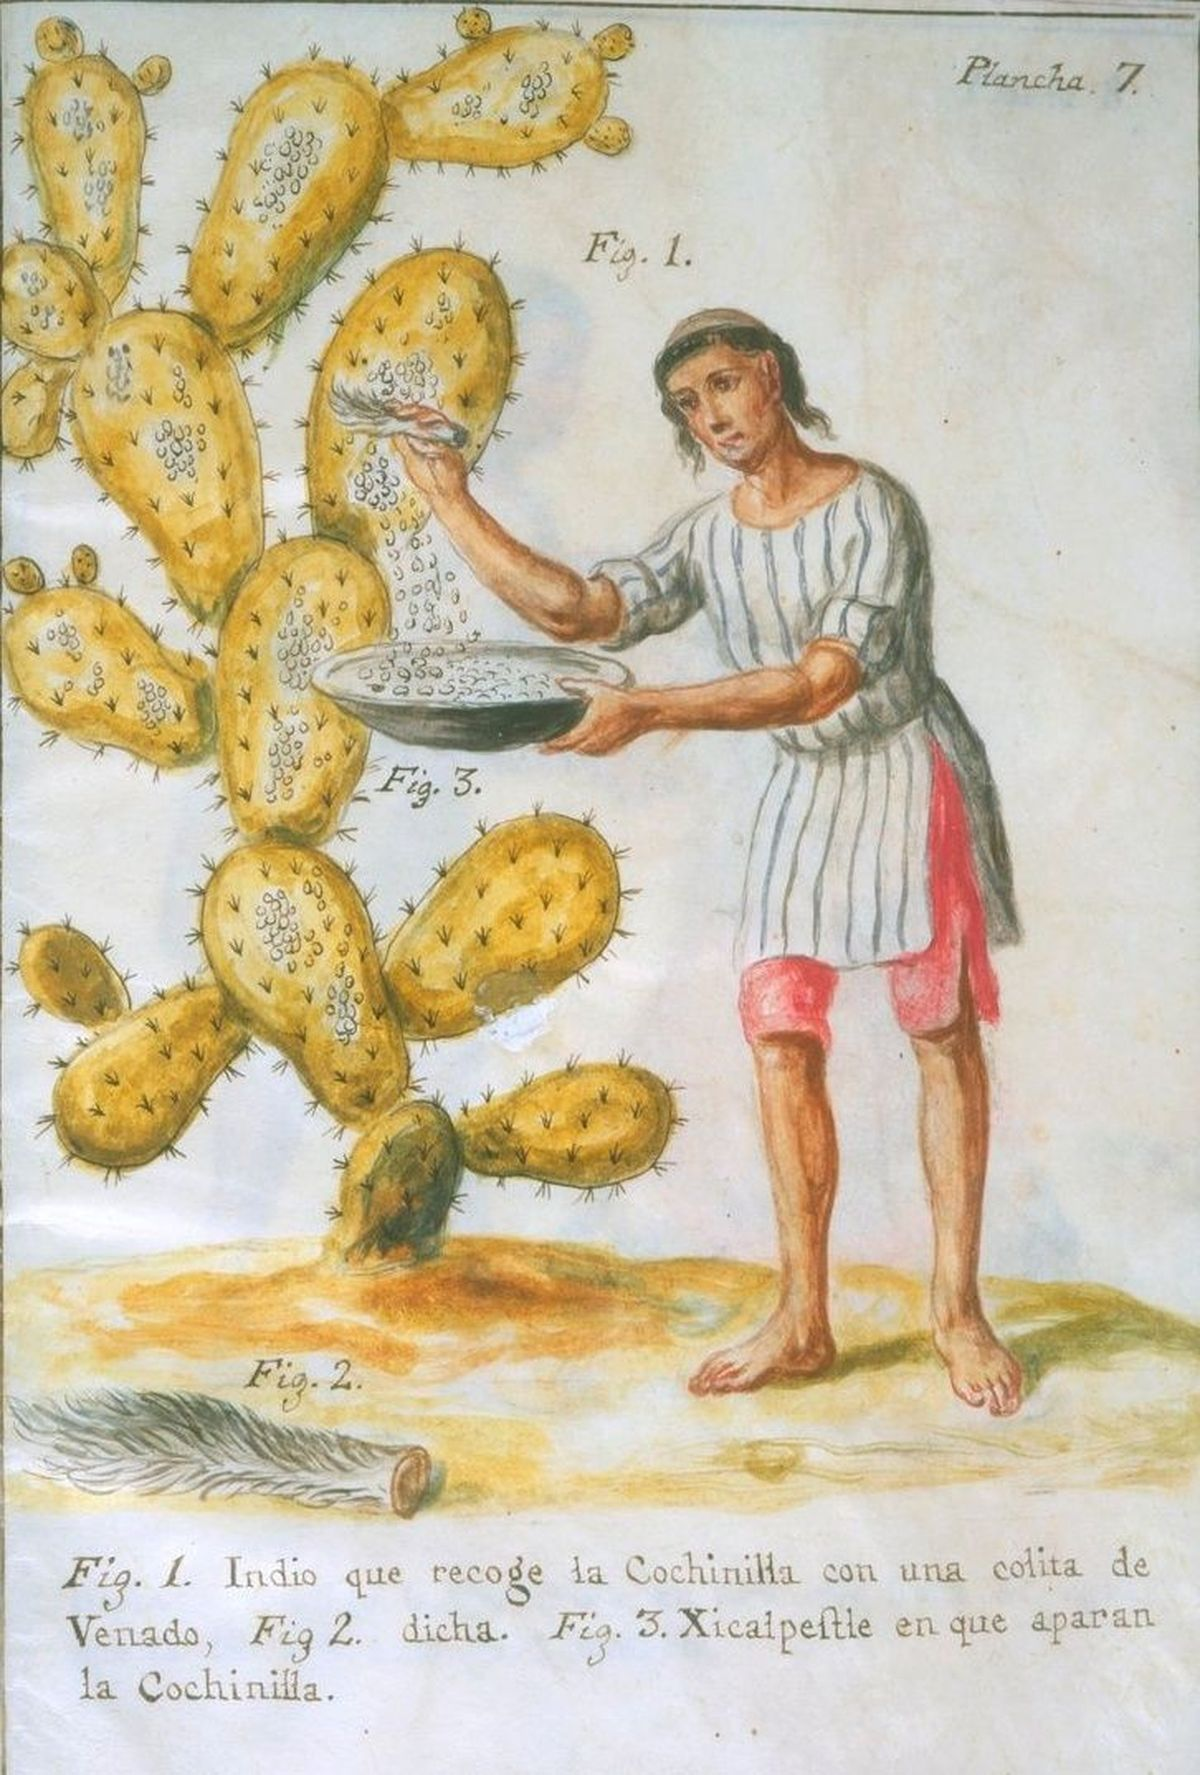 Источник: https://en.wikipedia.org/wiki/Cochineal